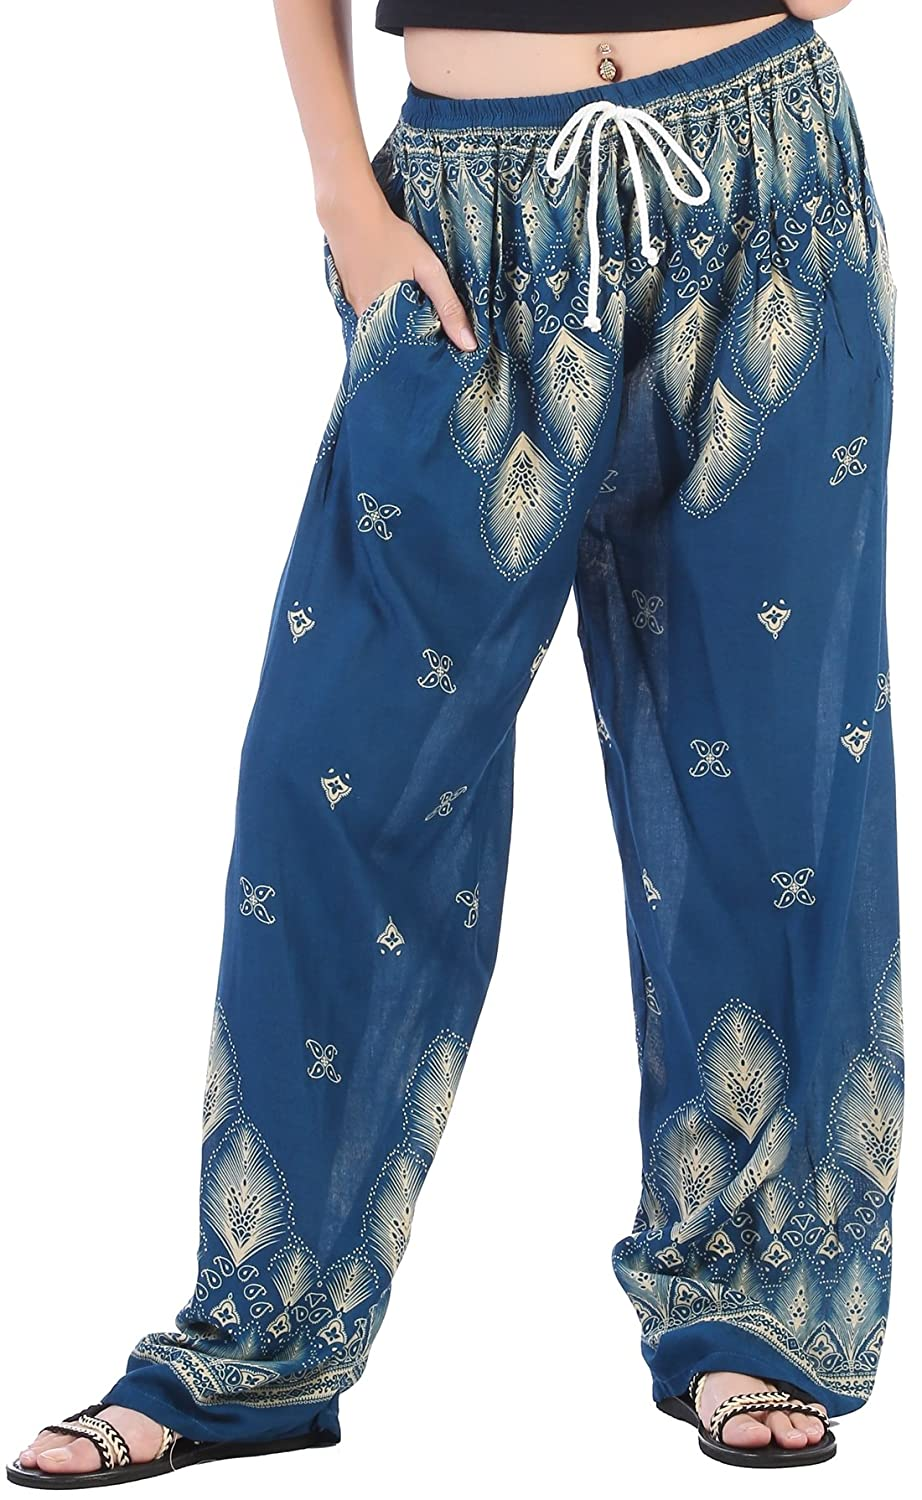 5f5ec0b37a BREATHABLE, SILKY SOFT RAYON FABRIC: Made out of 100% rayon fabric,  CandyHusky printed harem pants are silkier, softer & smoother than your  average loose ...